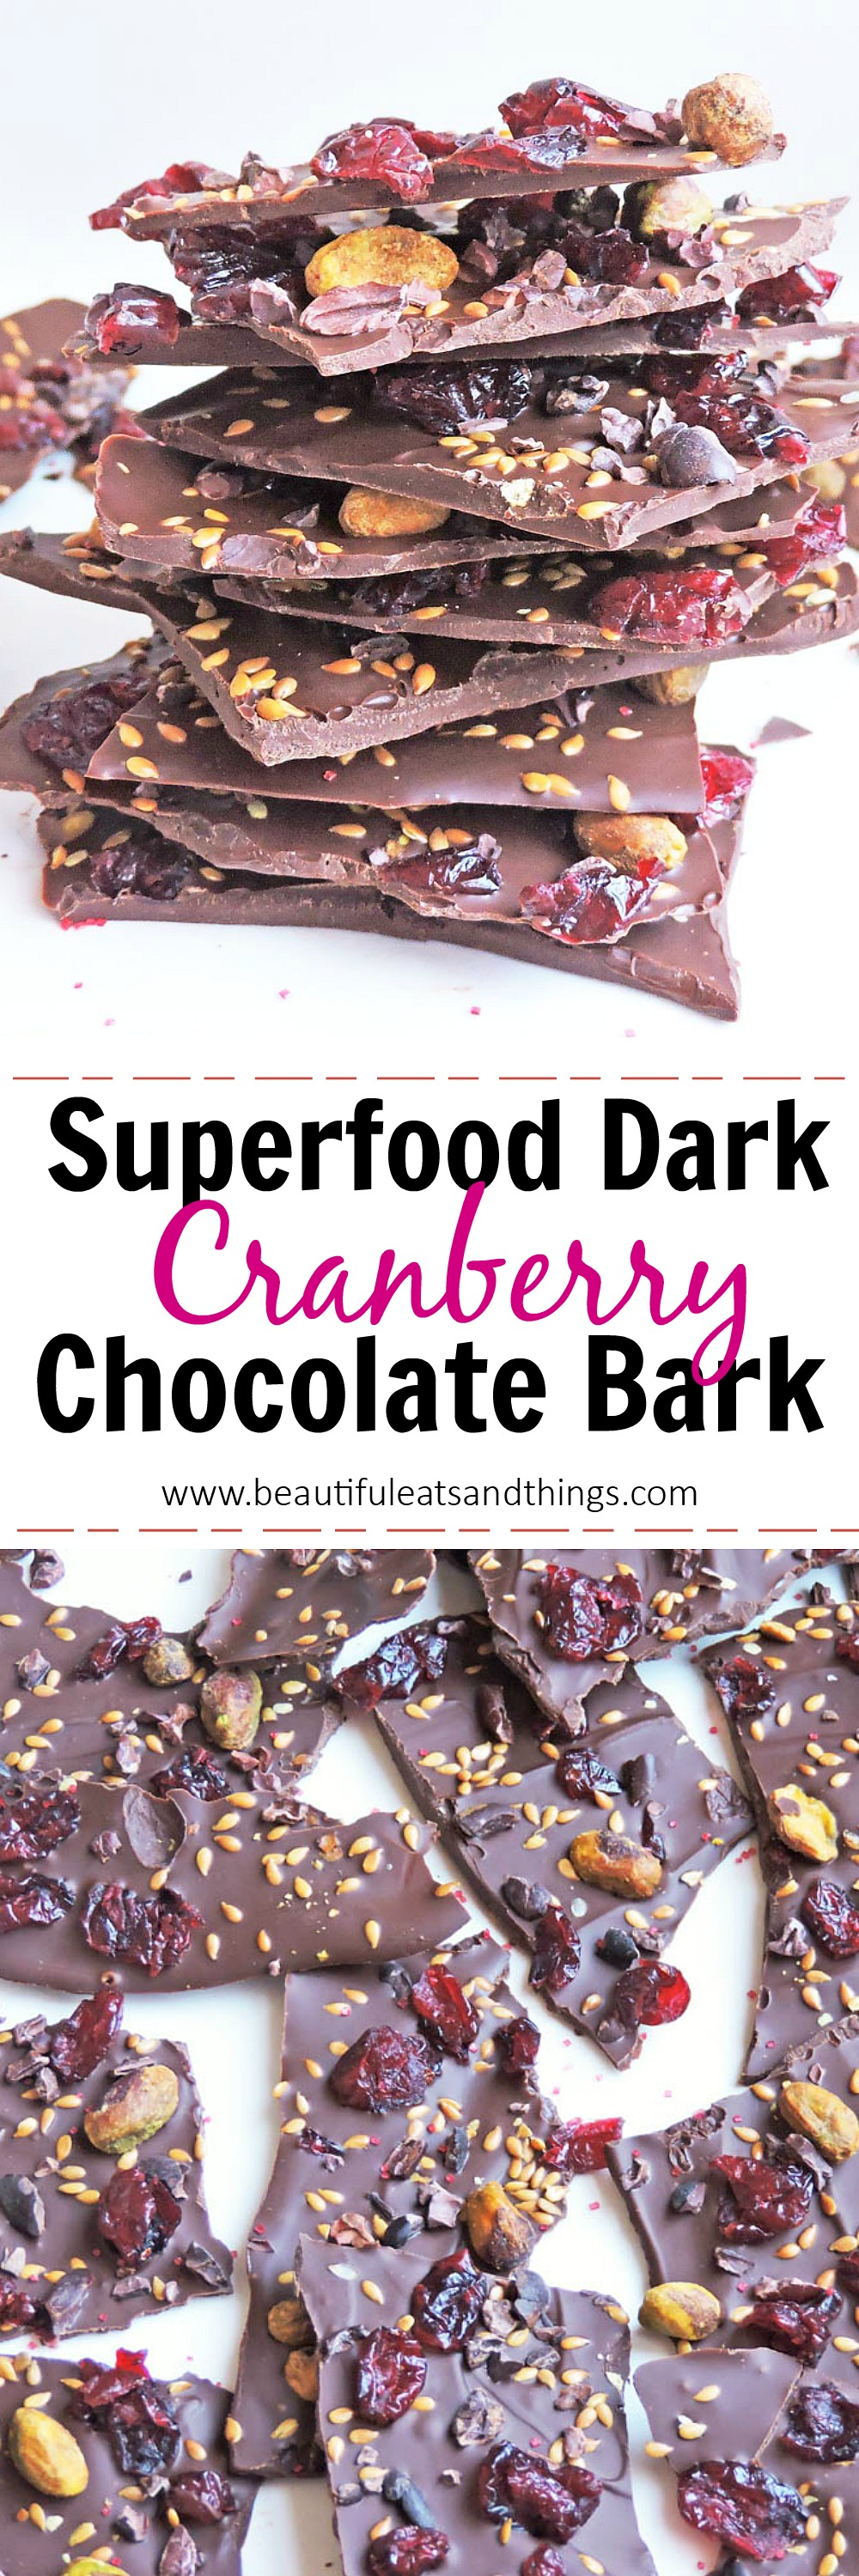 Superfood Dark Chocolate Cranberry Bark Pinterest Pin